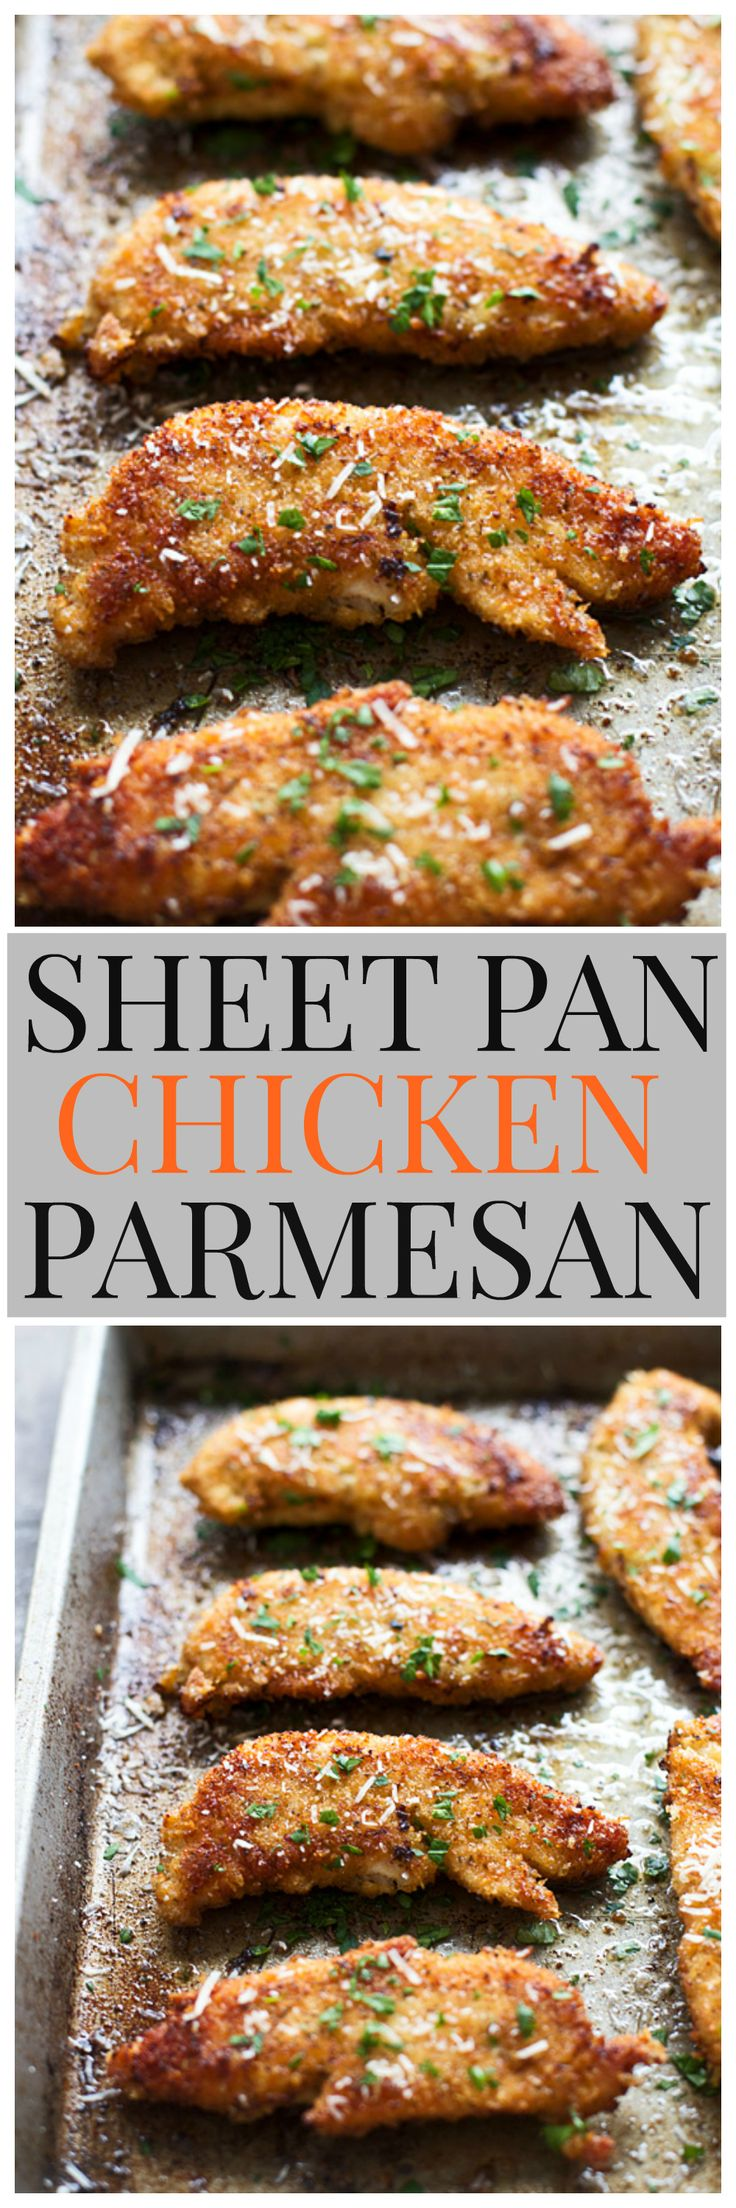 Crispy Sheet Pan Chicken Parmesan - An easy, mess-free version of a favorite chicken dinner!